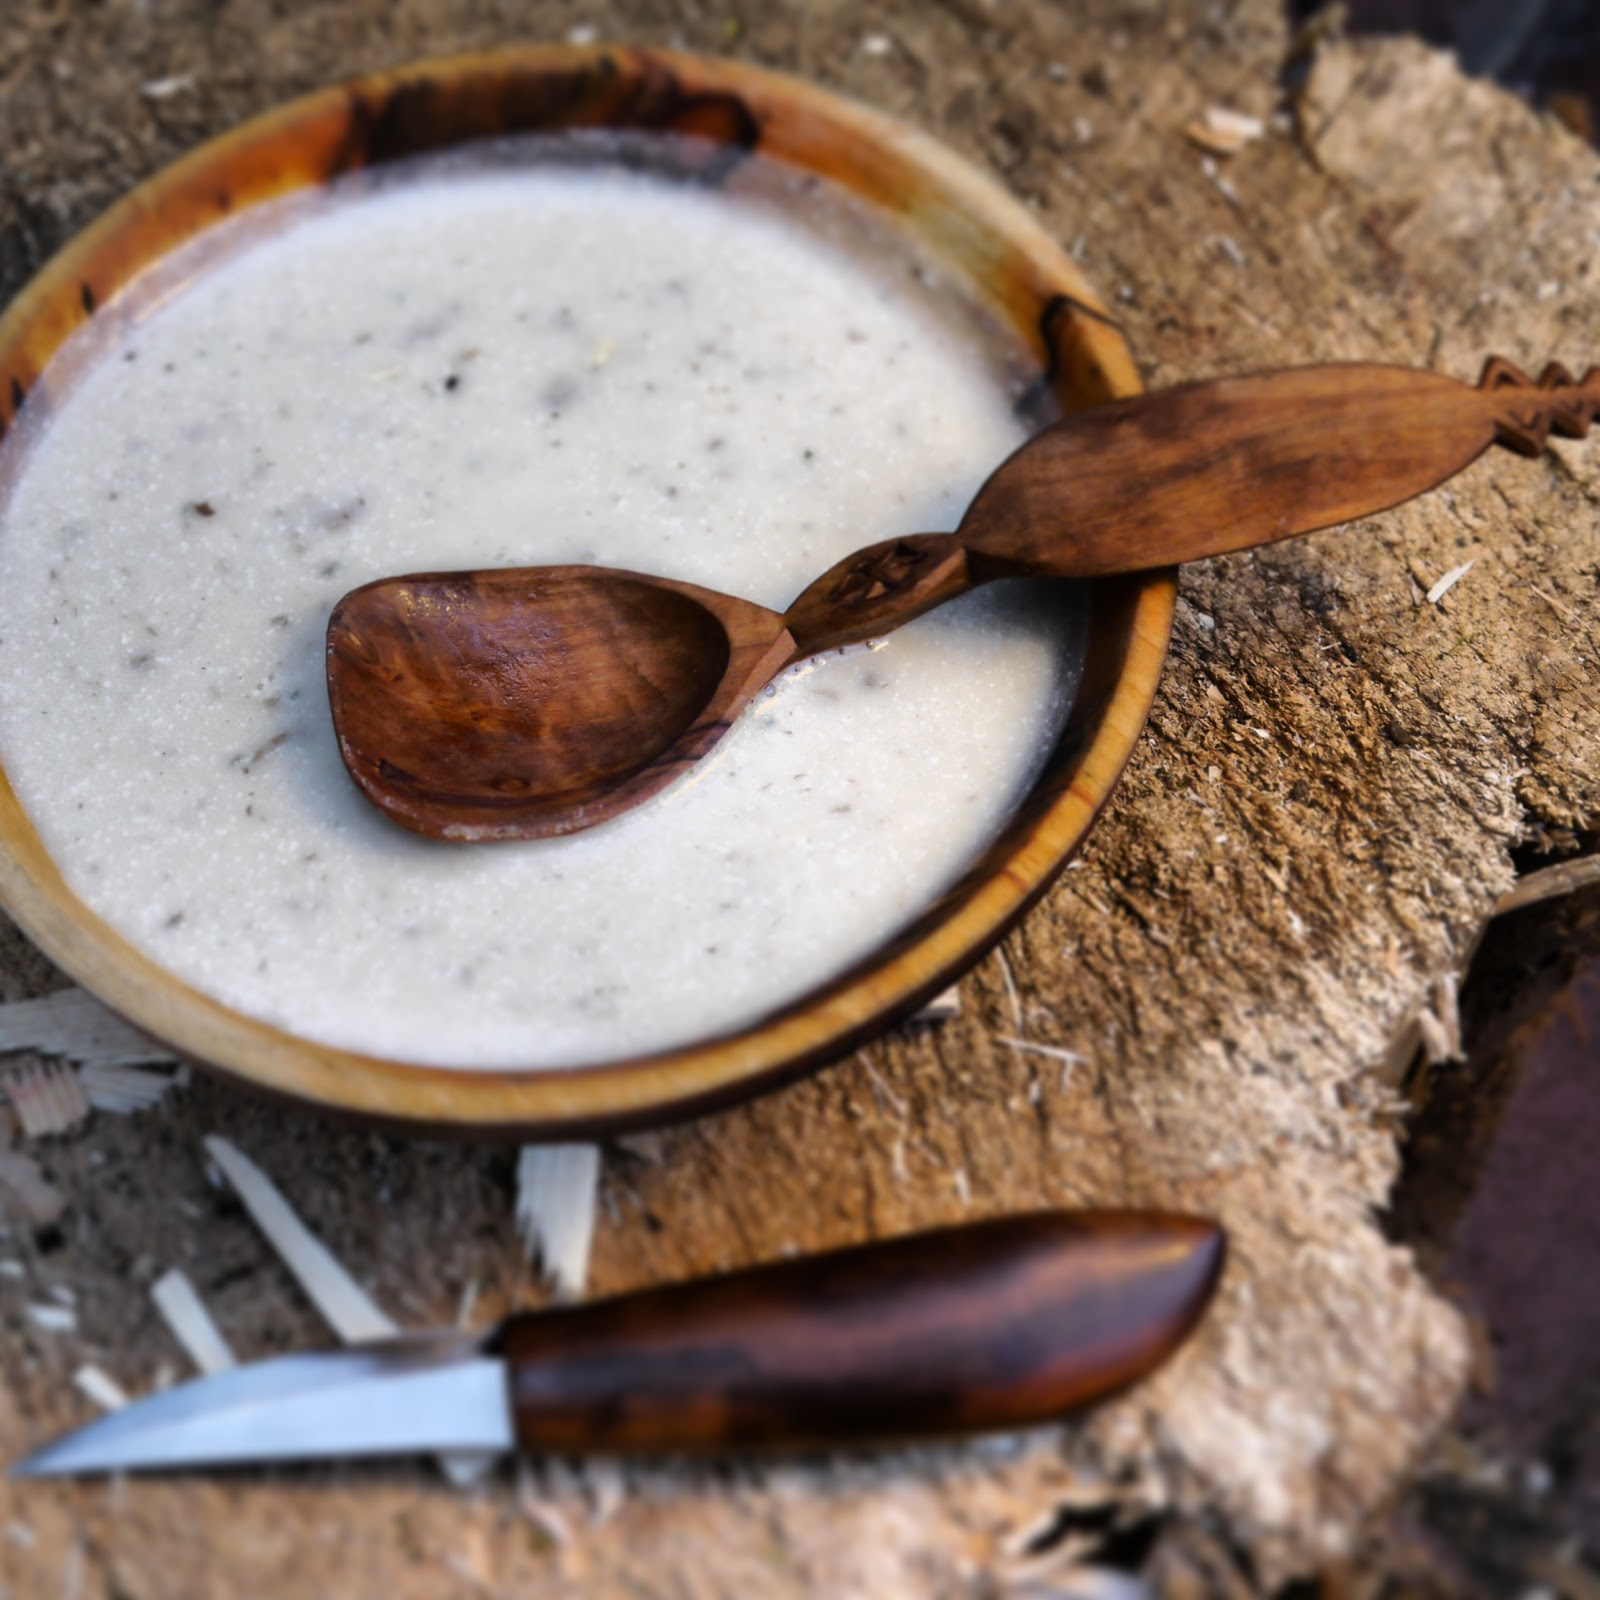 Spoon carving first steps drawing with an axe